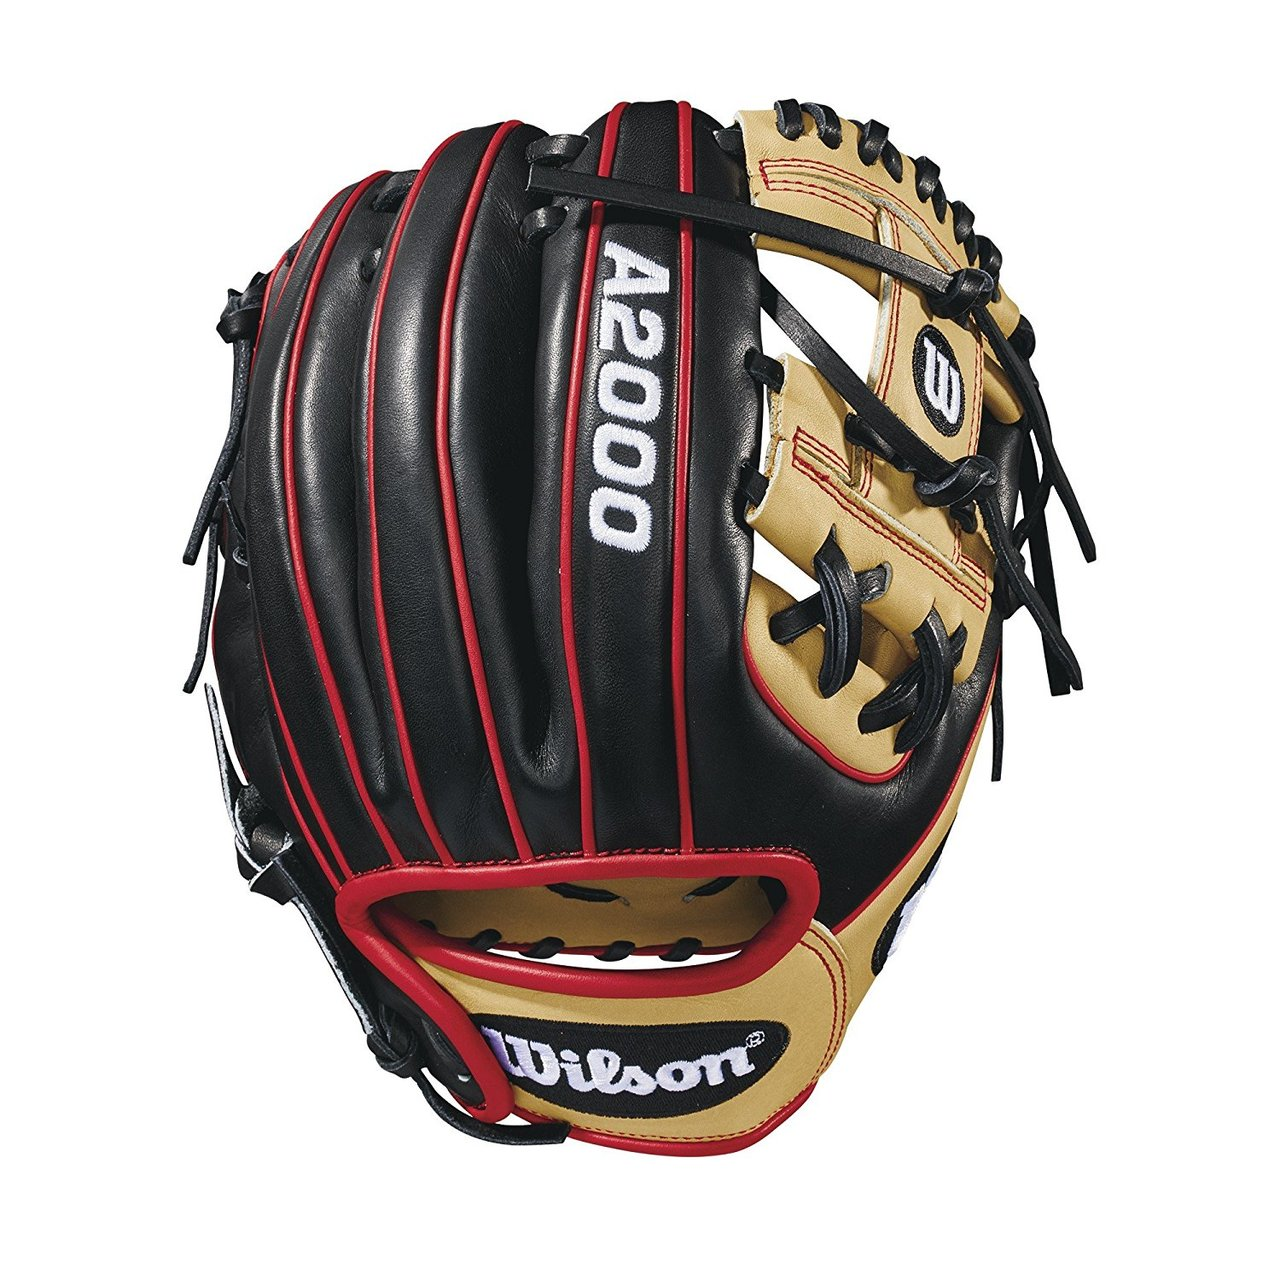 wilson-2018-a2000-pf-1788-infield-baseball-glove-right-hand-throw-11-25 WTA20RB18PF88-RightHandThrow Wilson 887768614683 11.25 infield model H-Web contruction Pedroia fit made to function perfectly